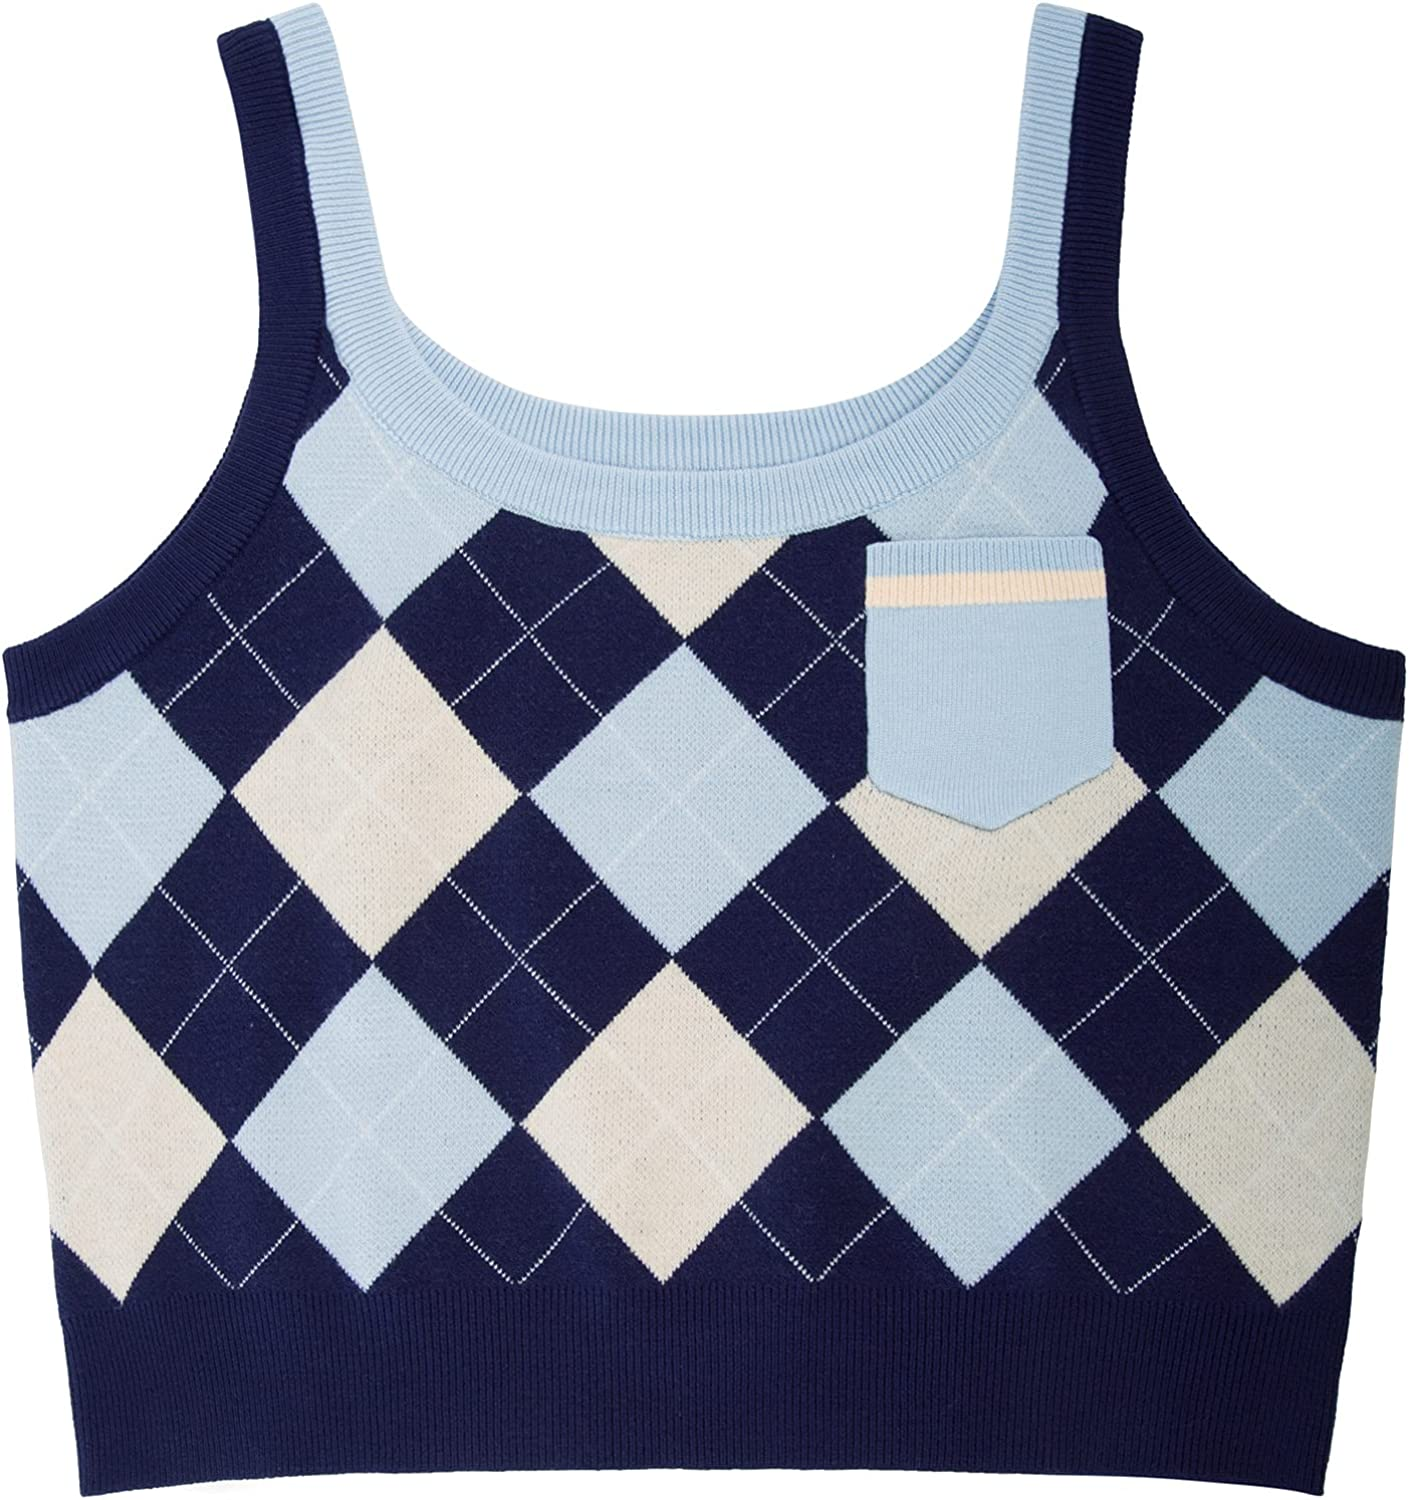 Kate Kasin Women's Sleeveless Preppy Style Vest Cropped Max 72% OFF Tampa Mall Sweater